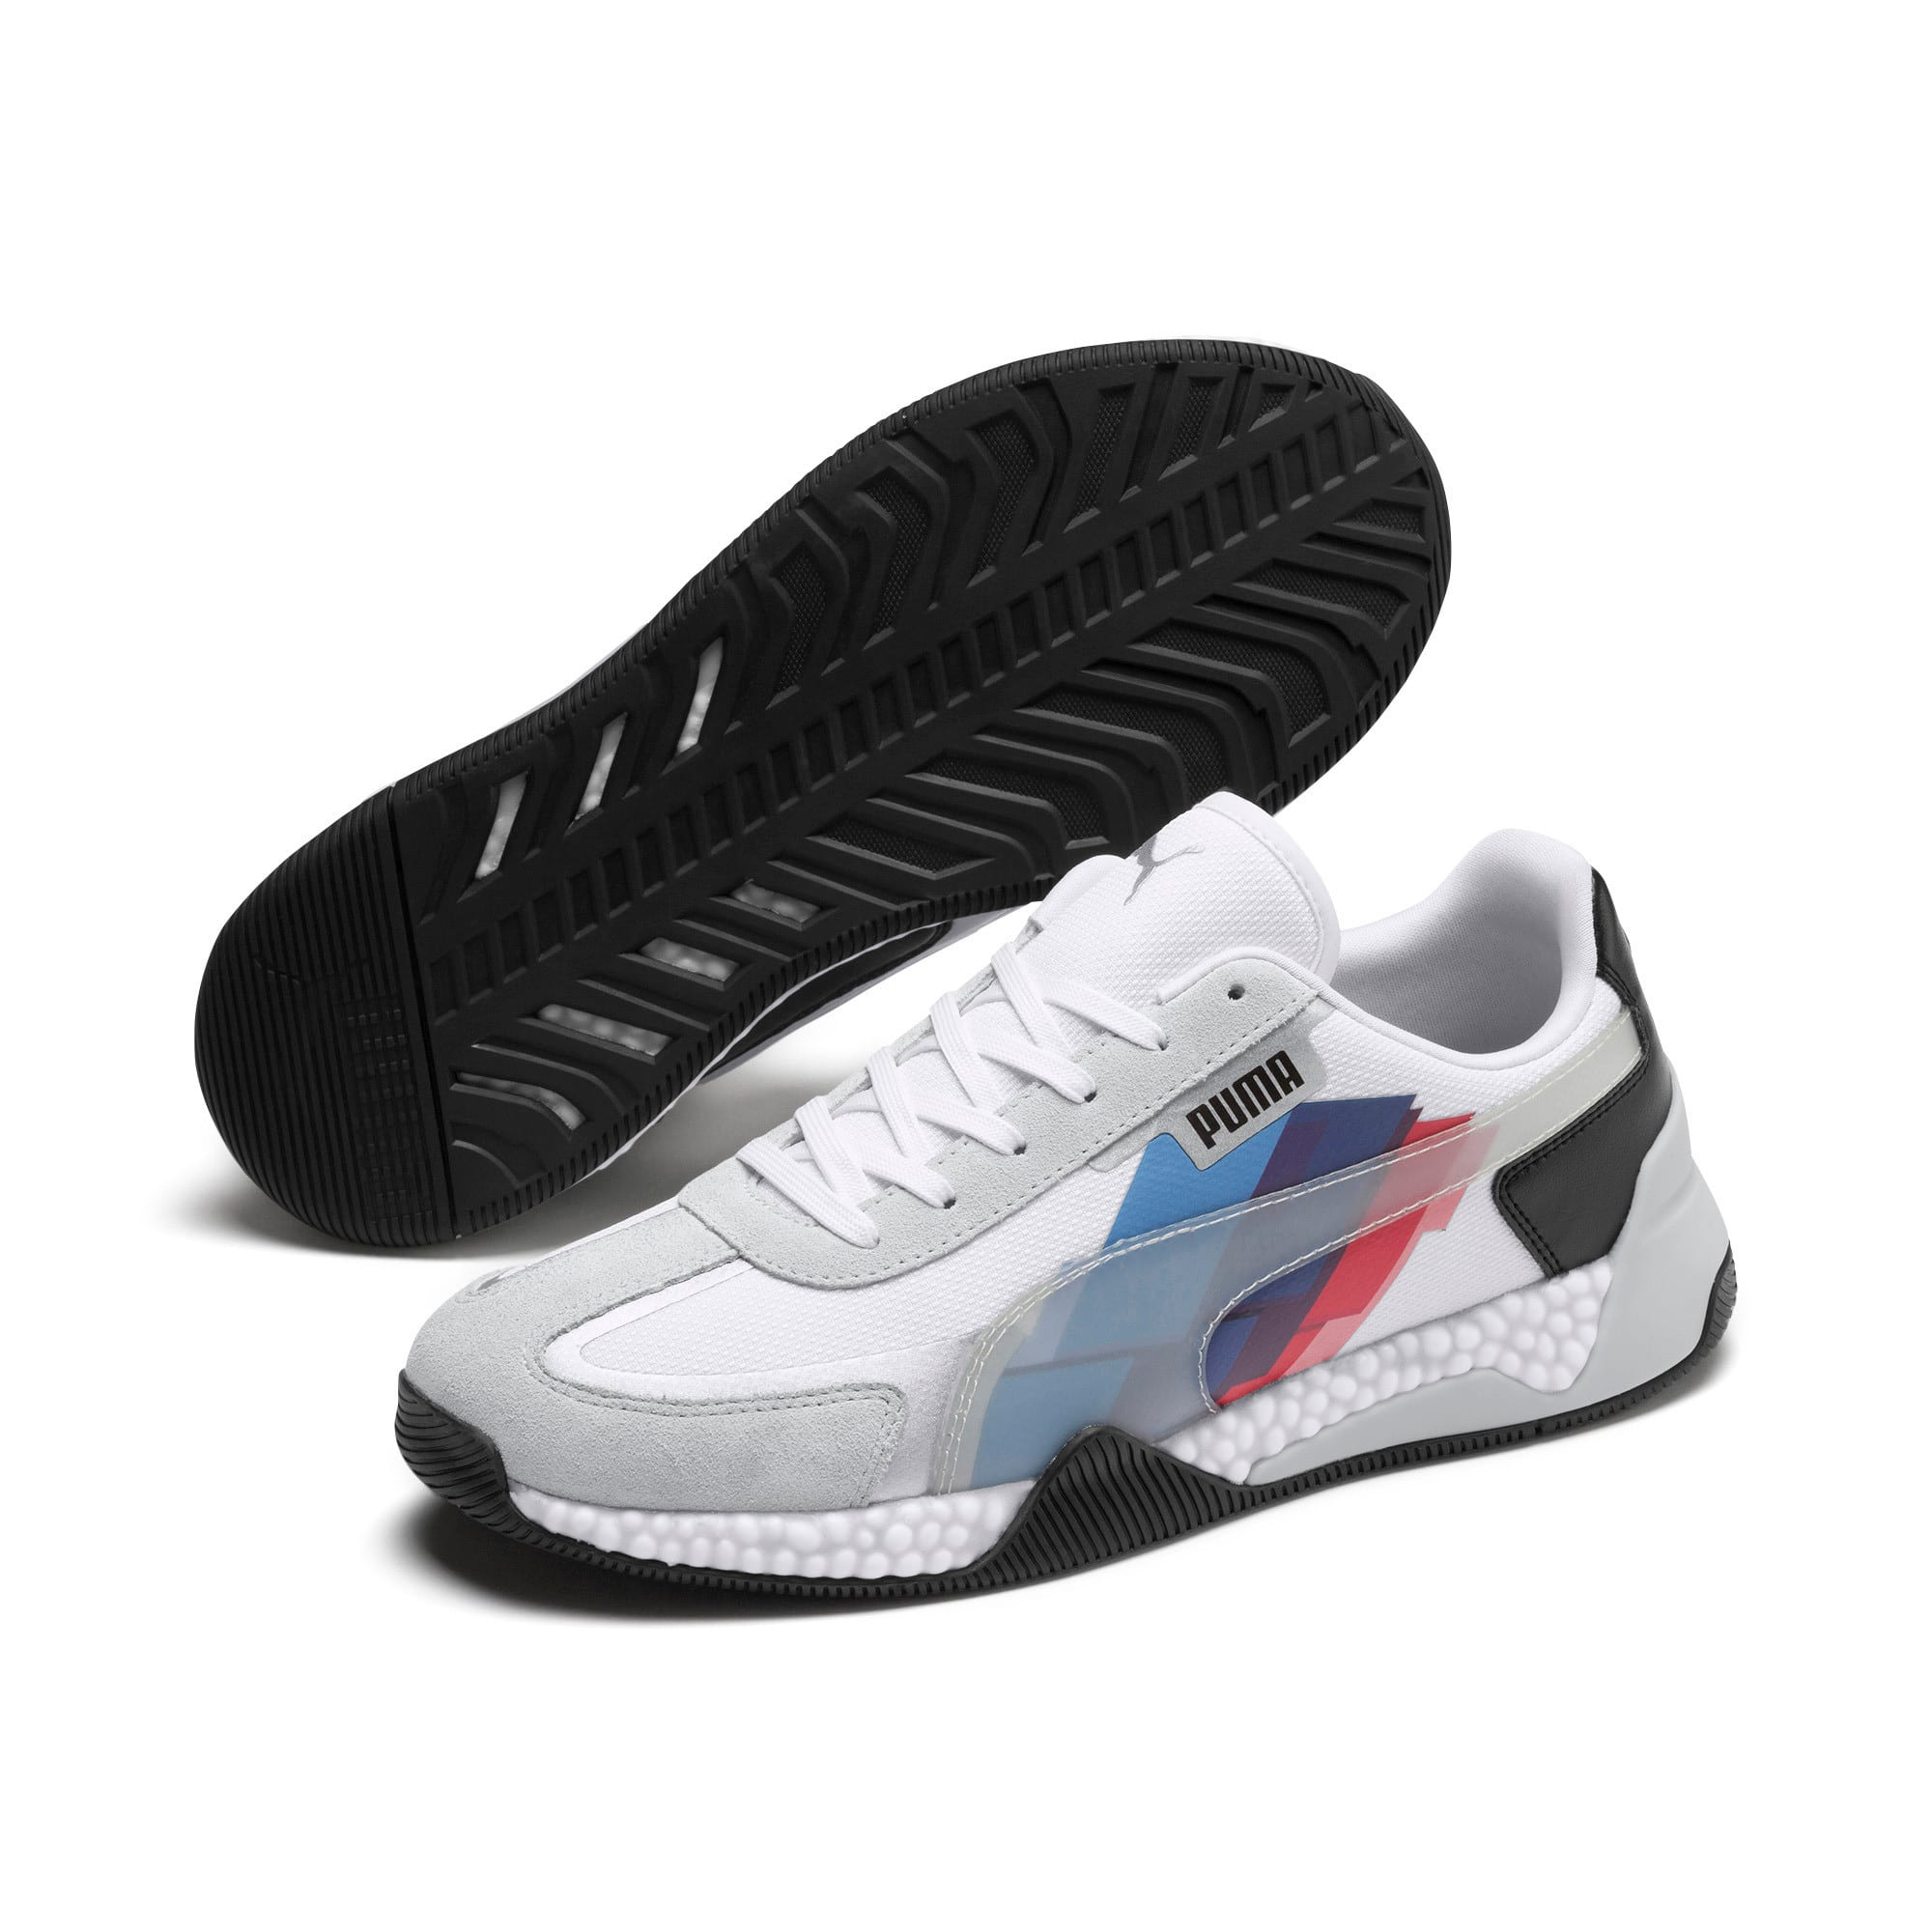 Thumbnail 3 of BMW M Motorsport Speed HYBRID Sneaker, White-Glacier Gray-Black, medium